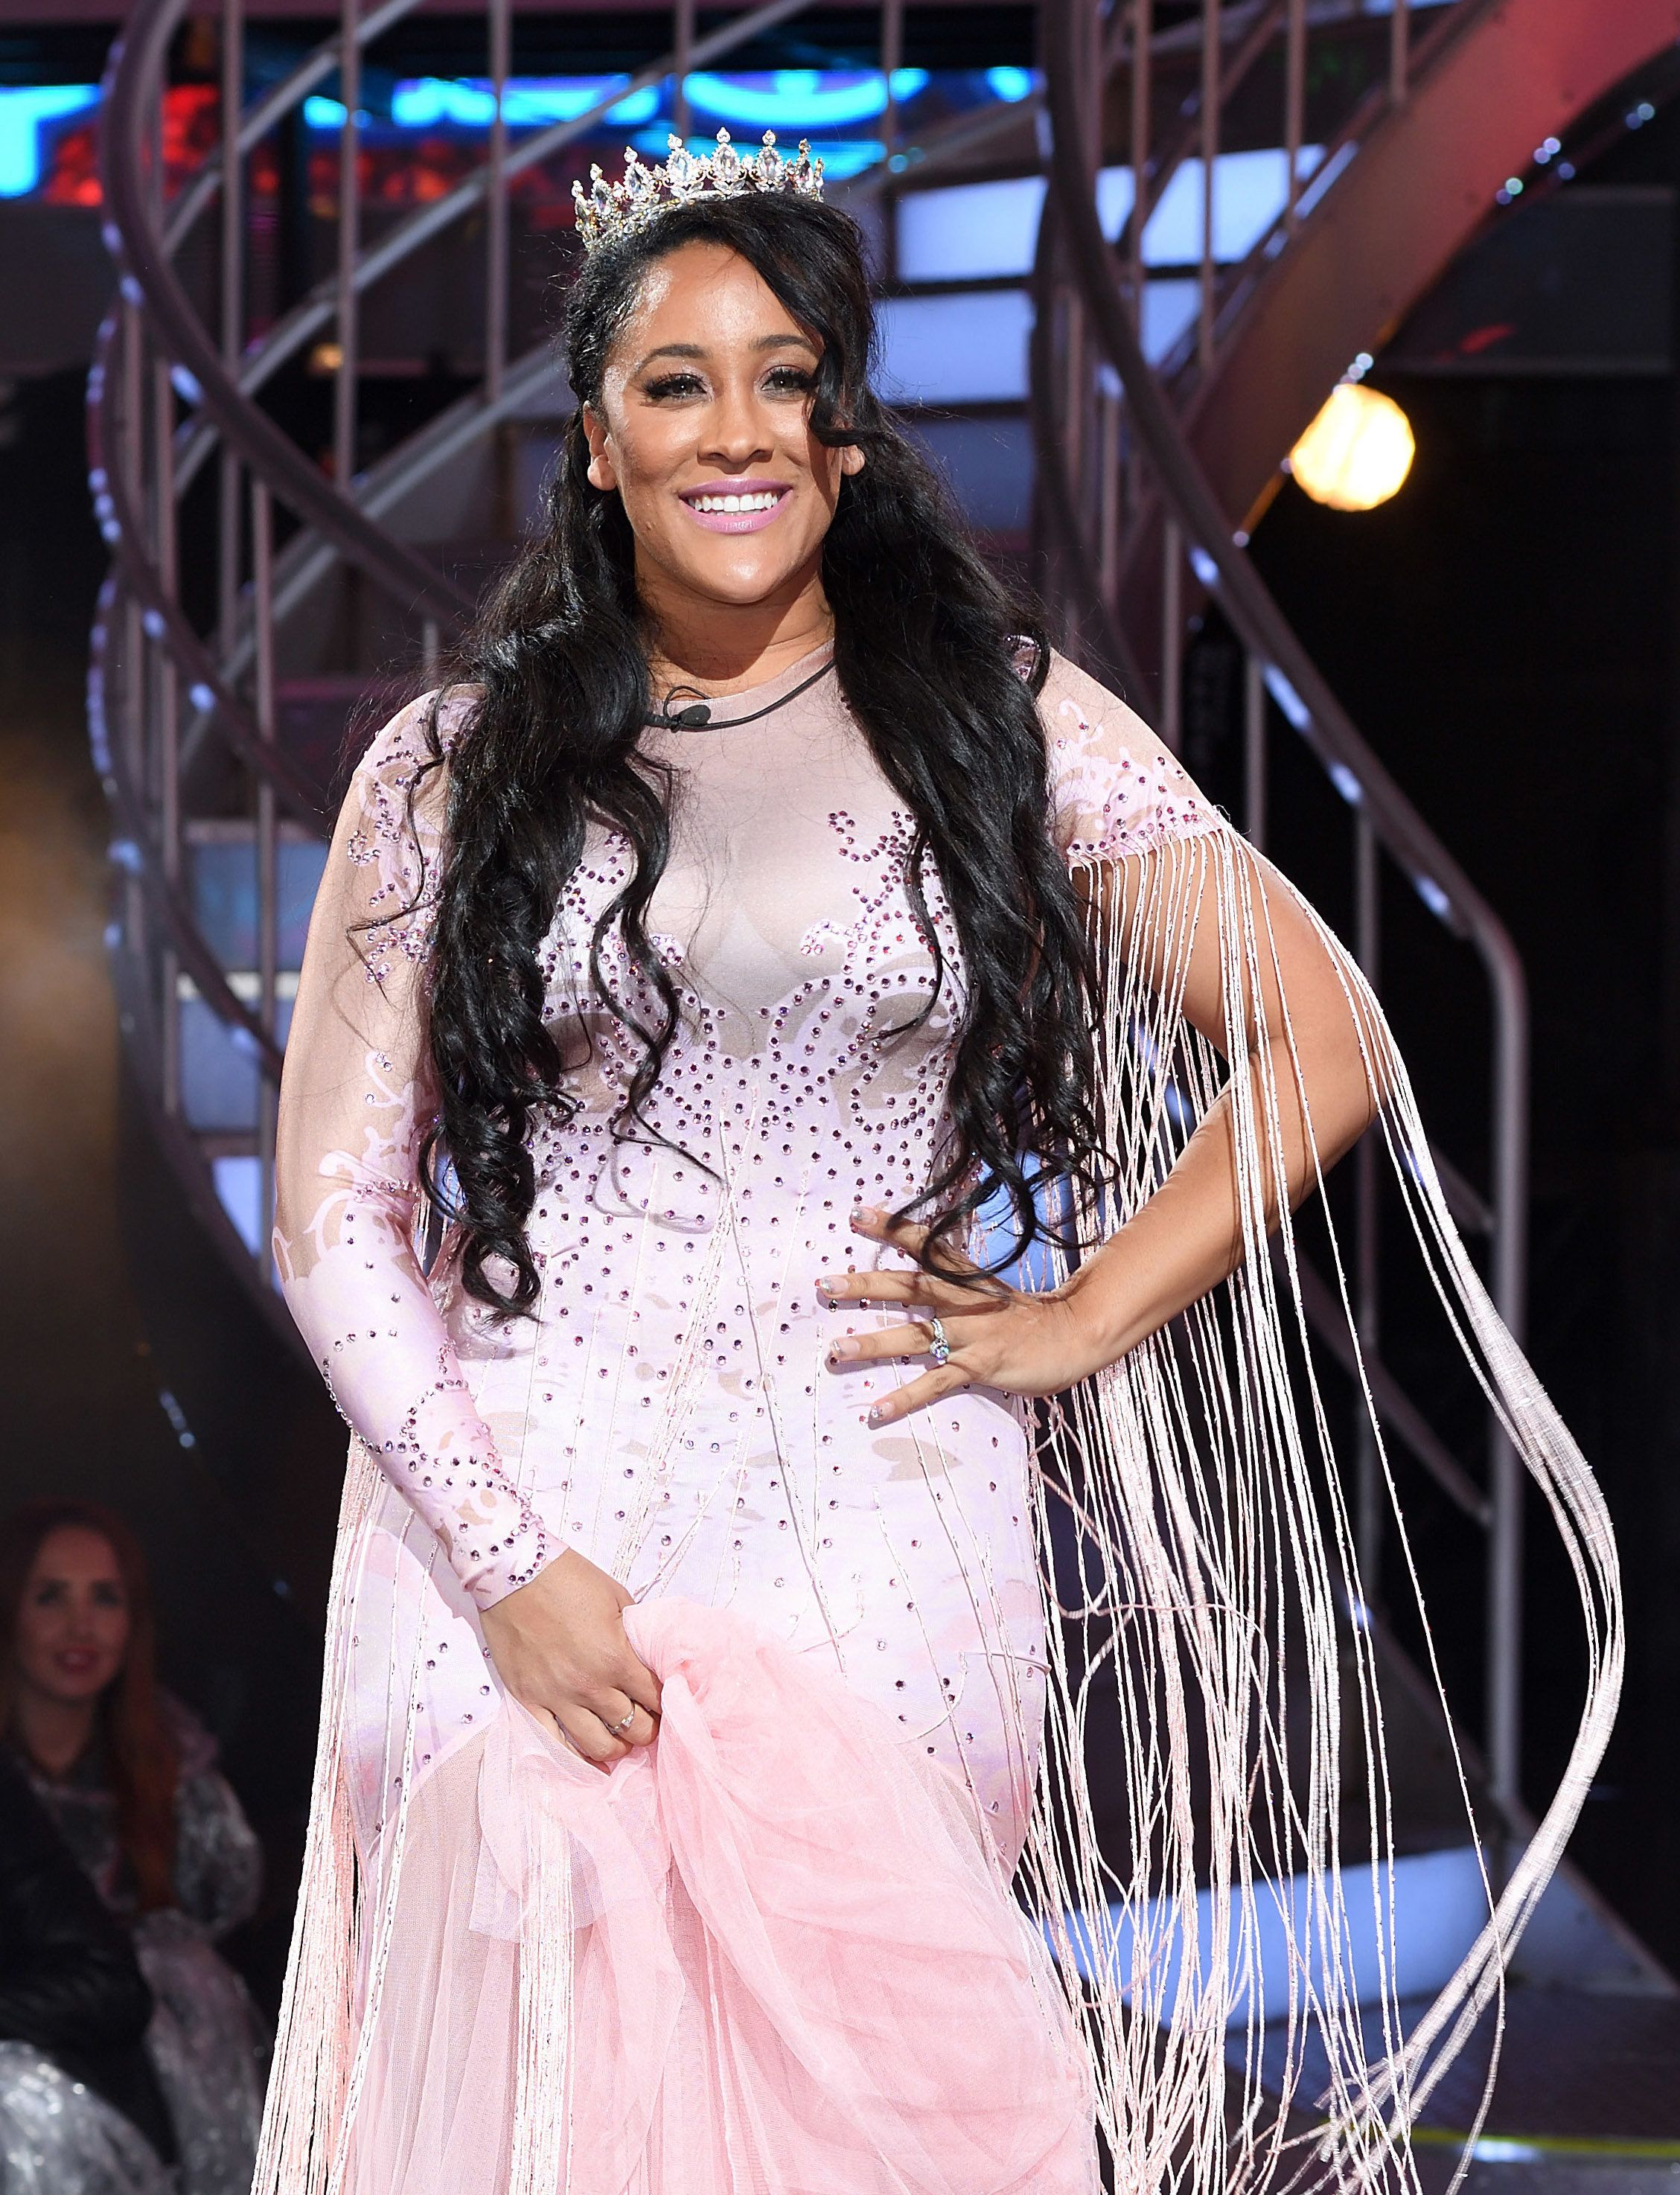 'Celebrity Big Brother' Evictee Natalie Nunn Vows To Expose 'Disgusting Liars' In The House